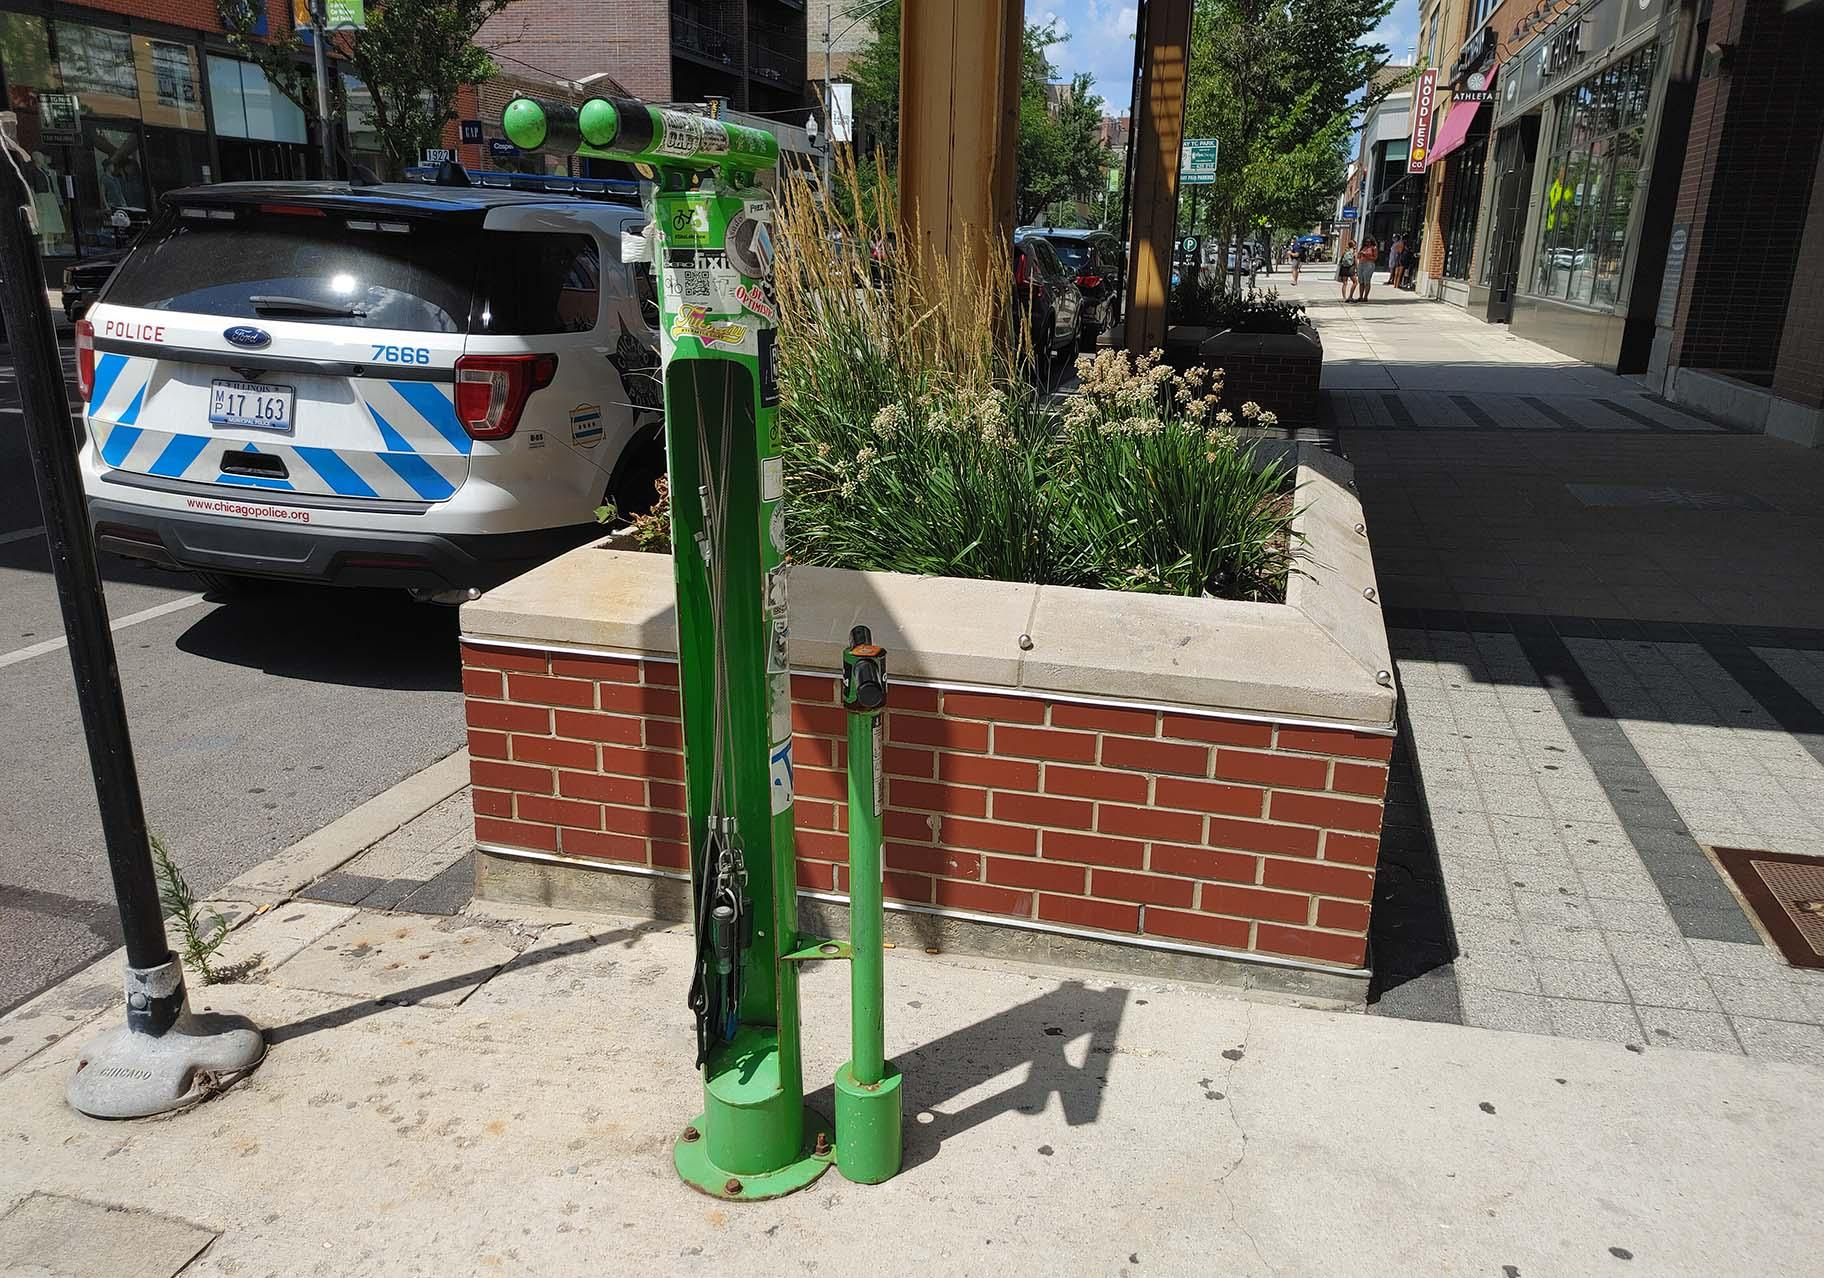 A Fixit bike repair station outside the Southport Brown Line CTA L stop. (Erica Gunderson / WTTW News)